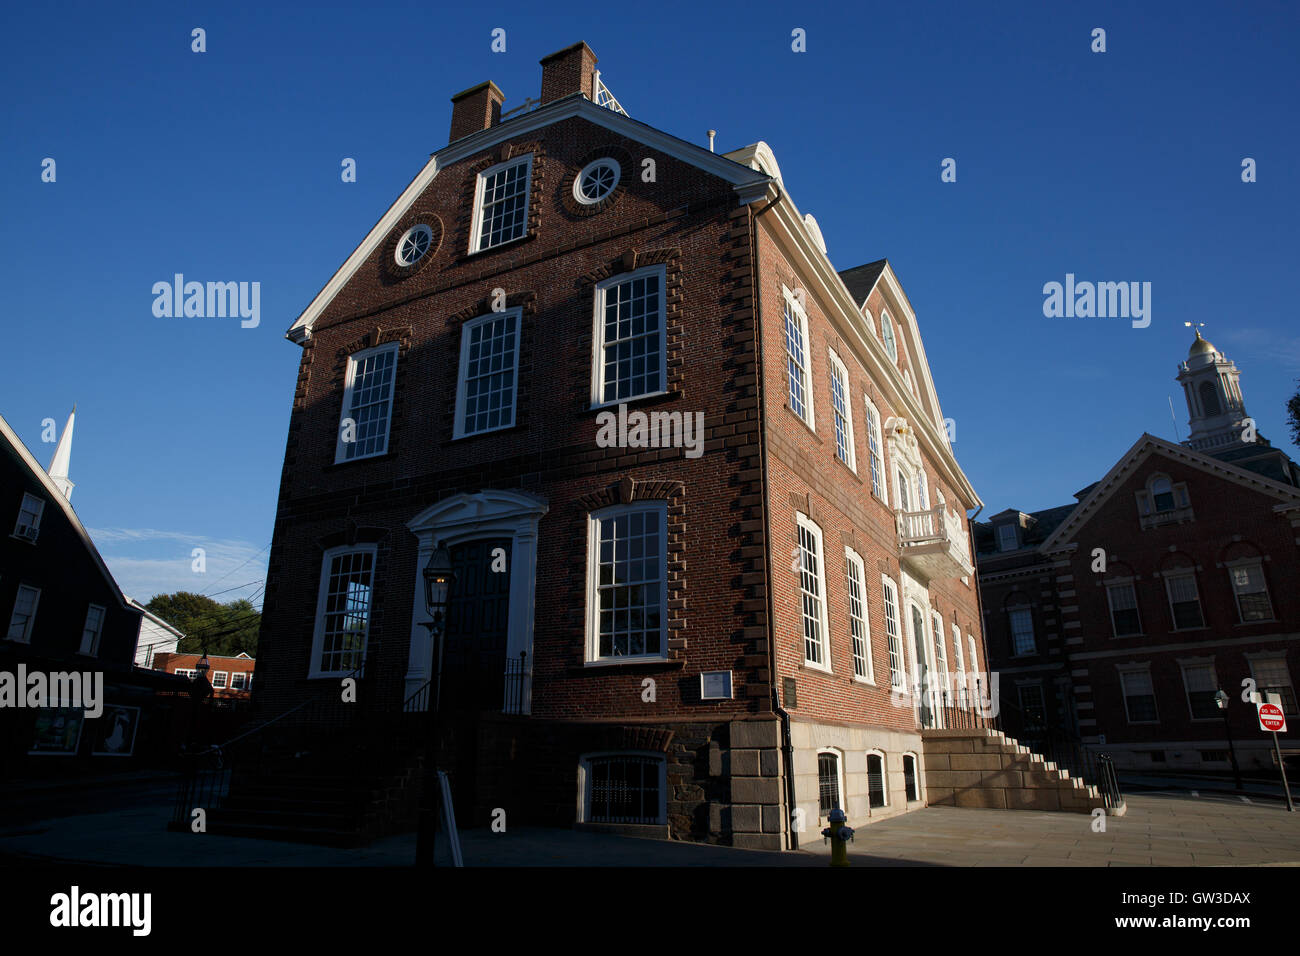 Old Colony House, Newport, Rhode Island - Stock Image